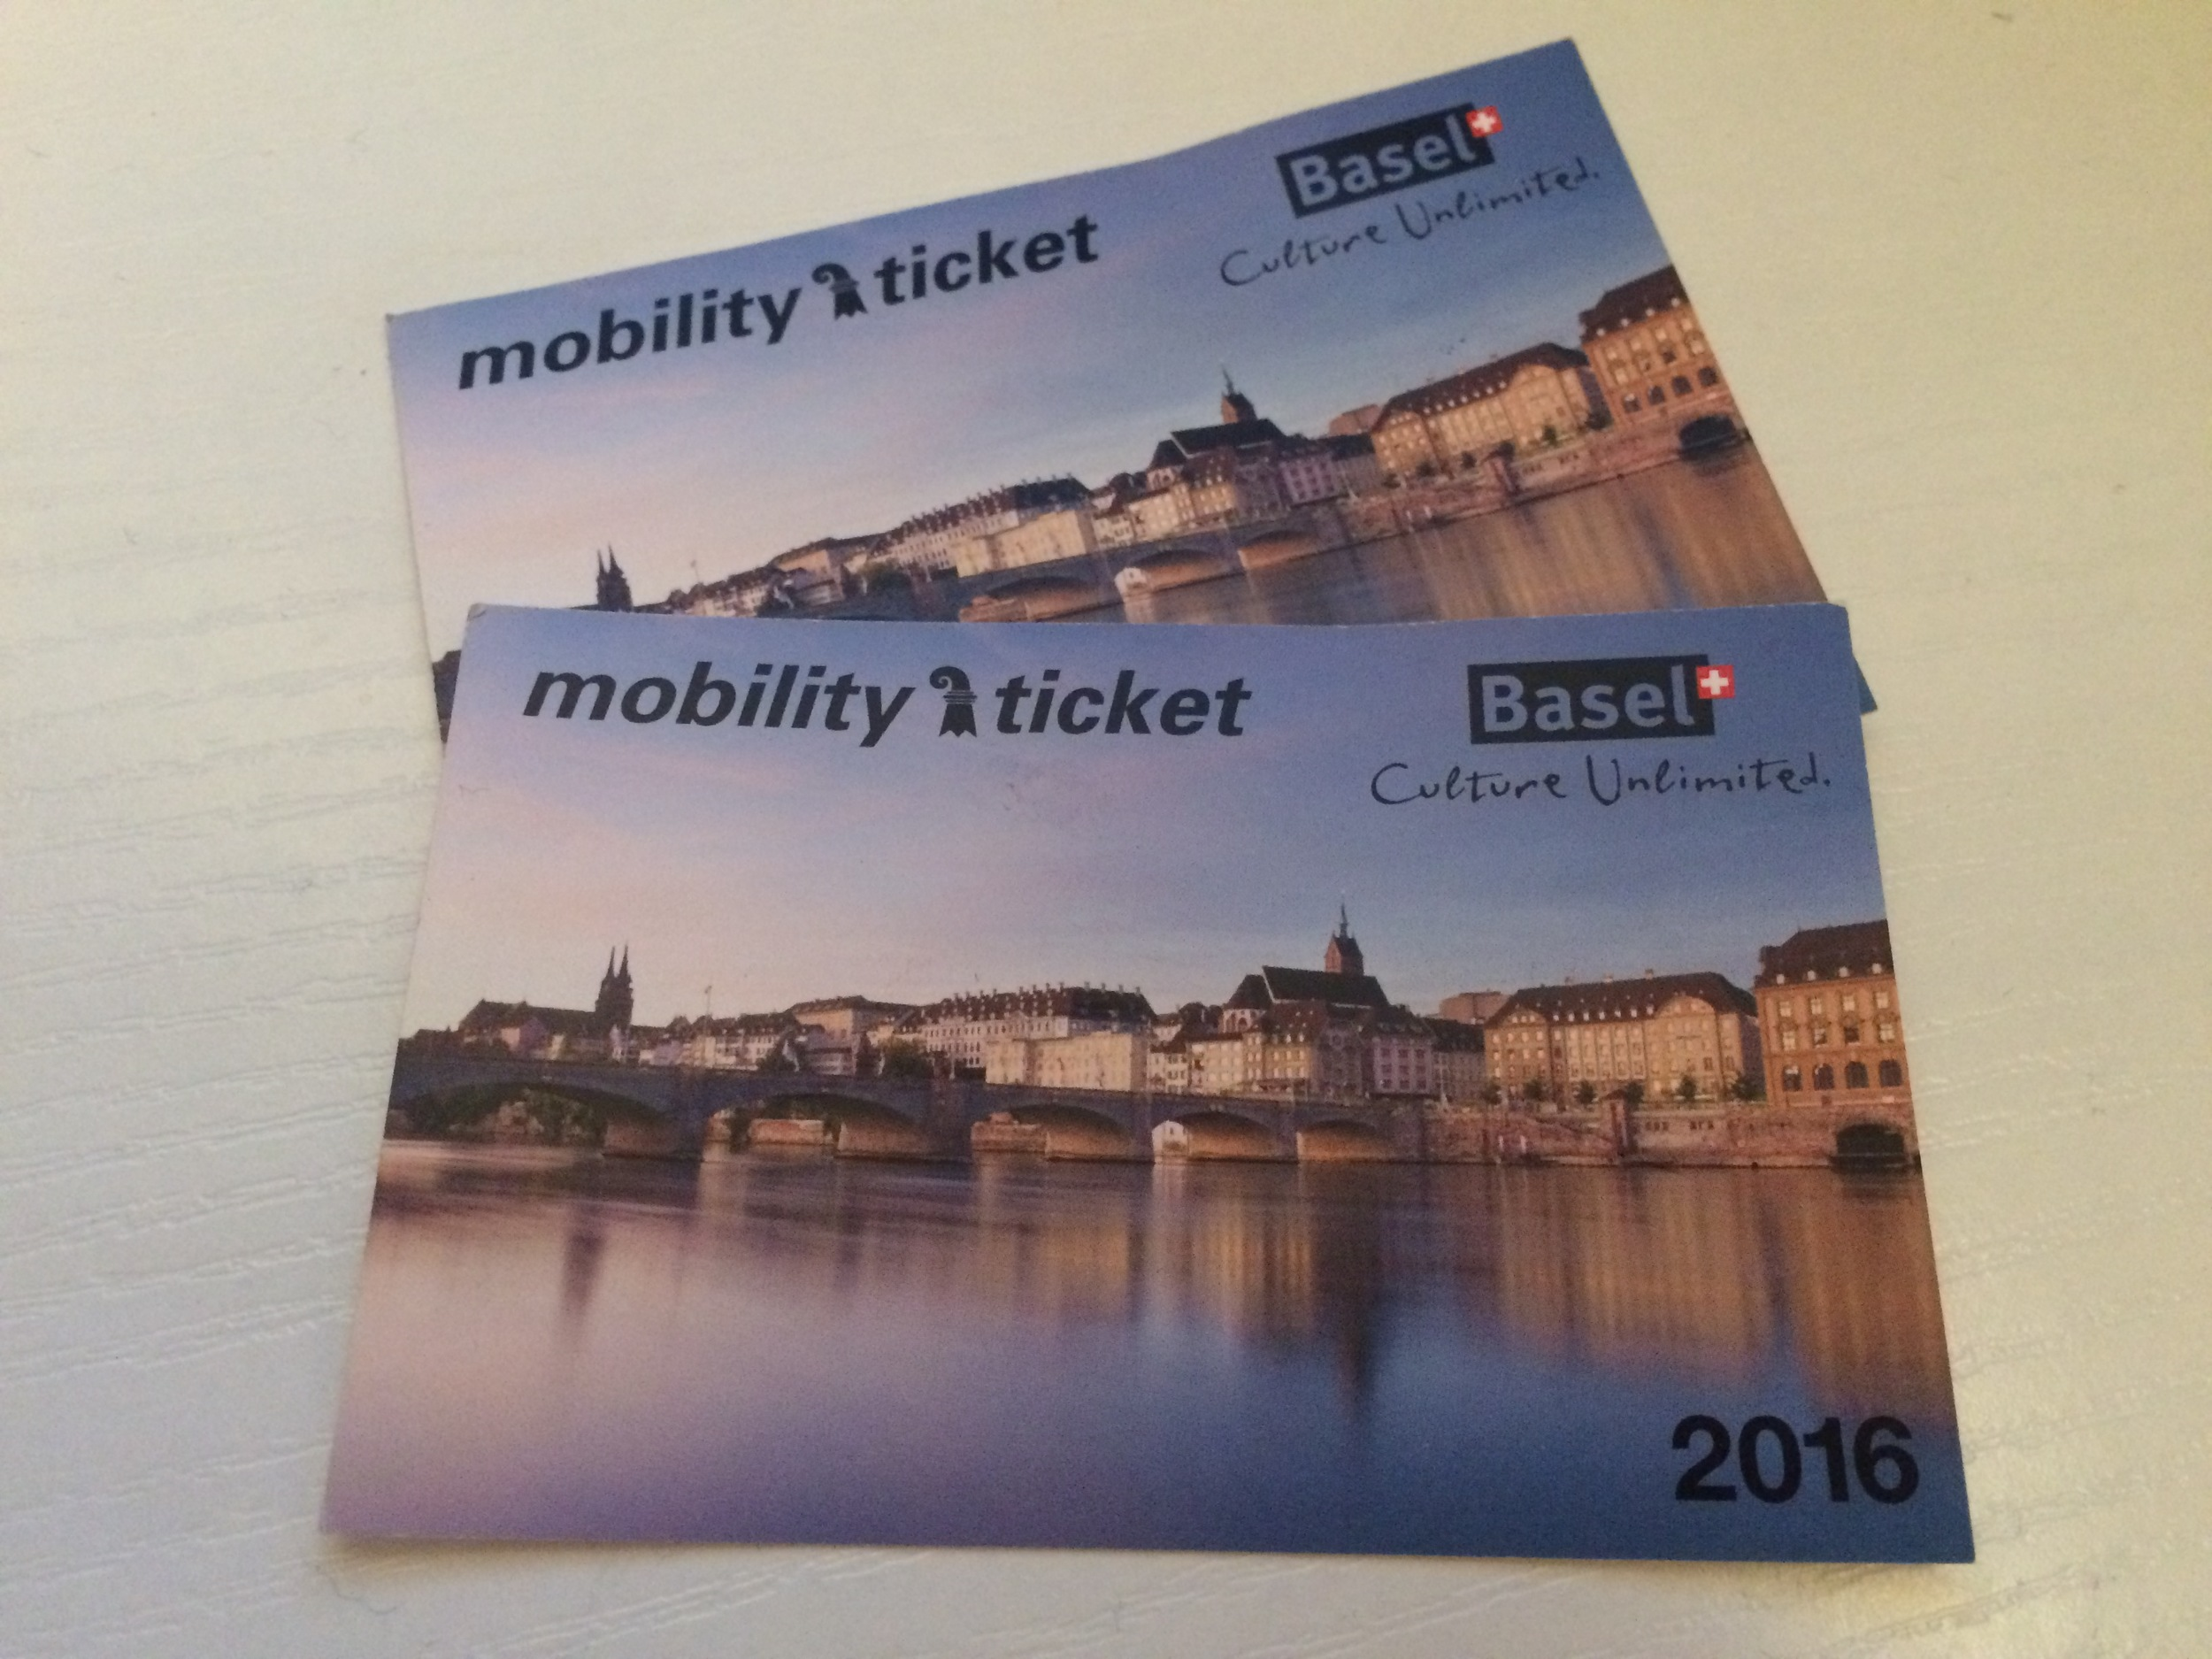 Our complimentary transport passes for Basel.